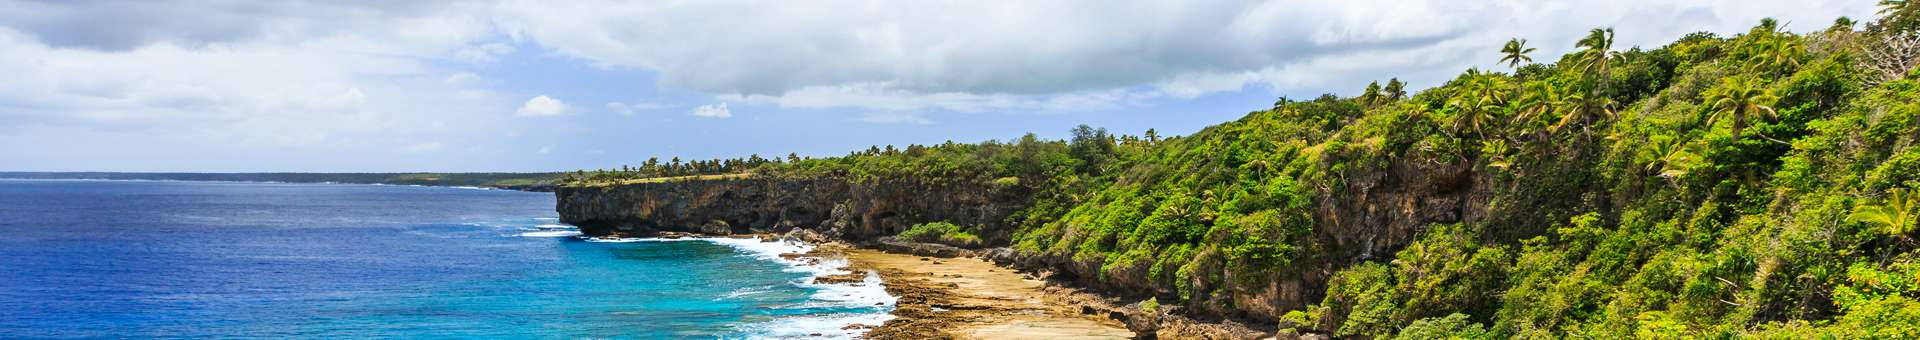 Search Whois information of domain names in Tonga